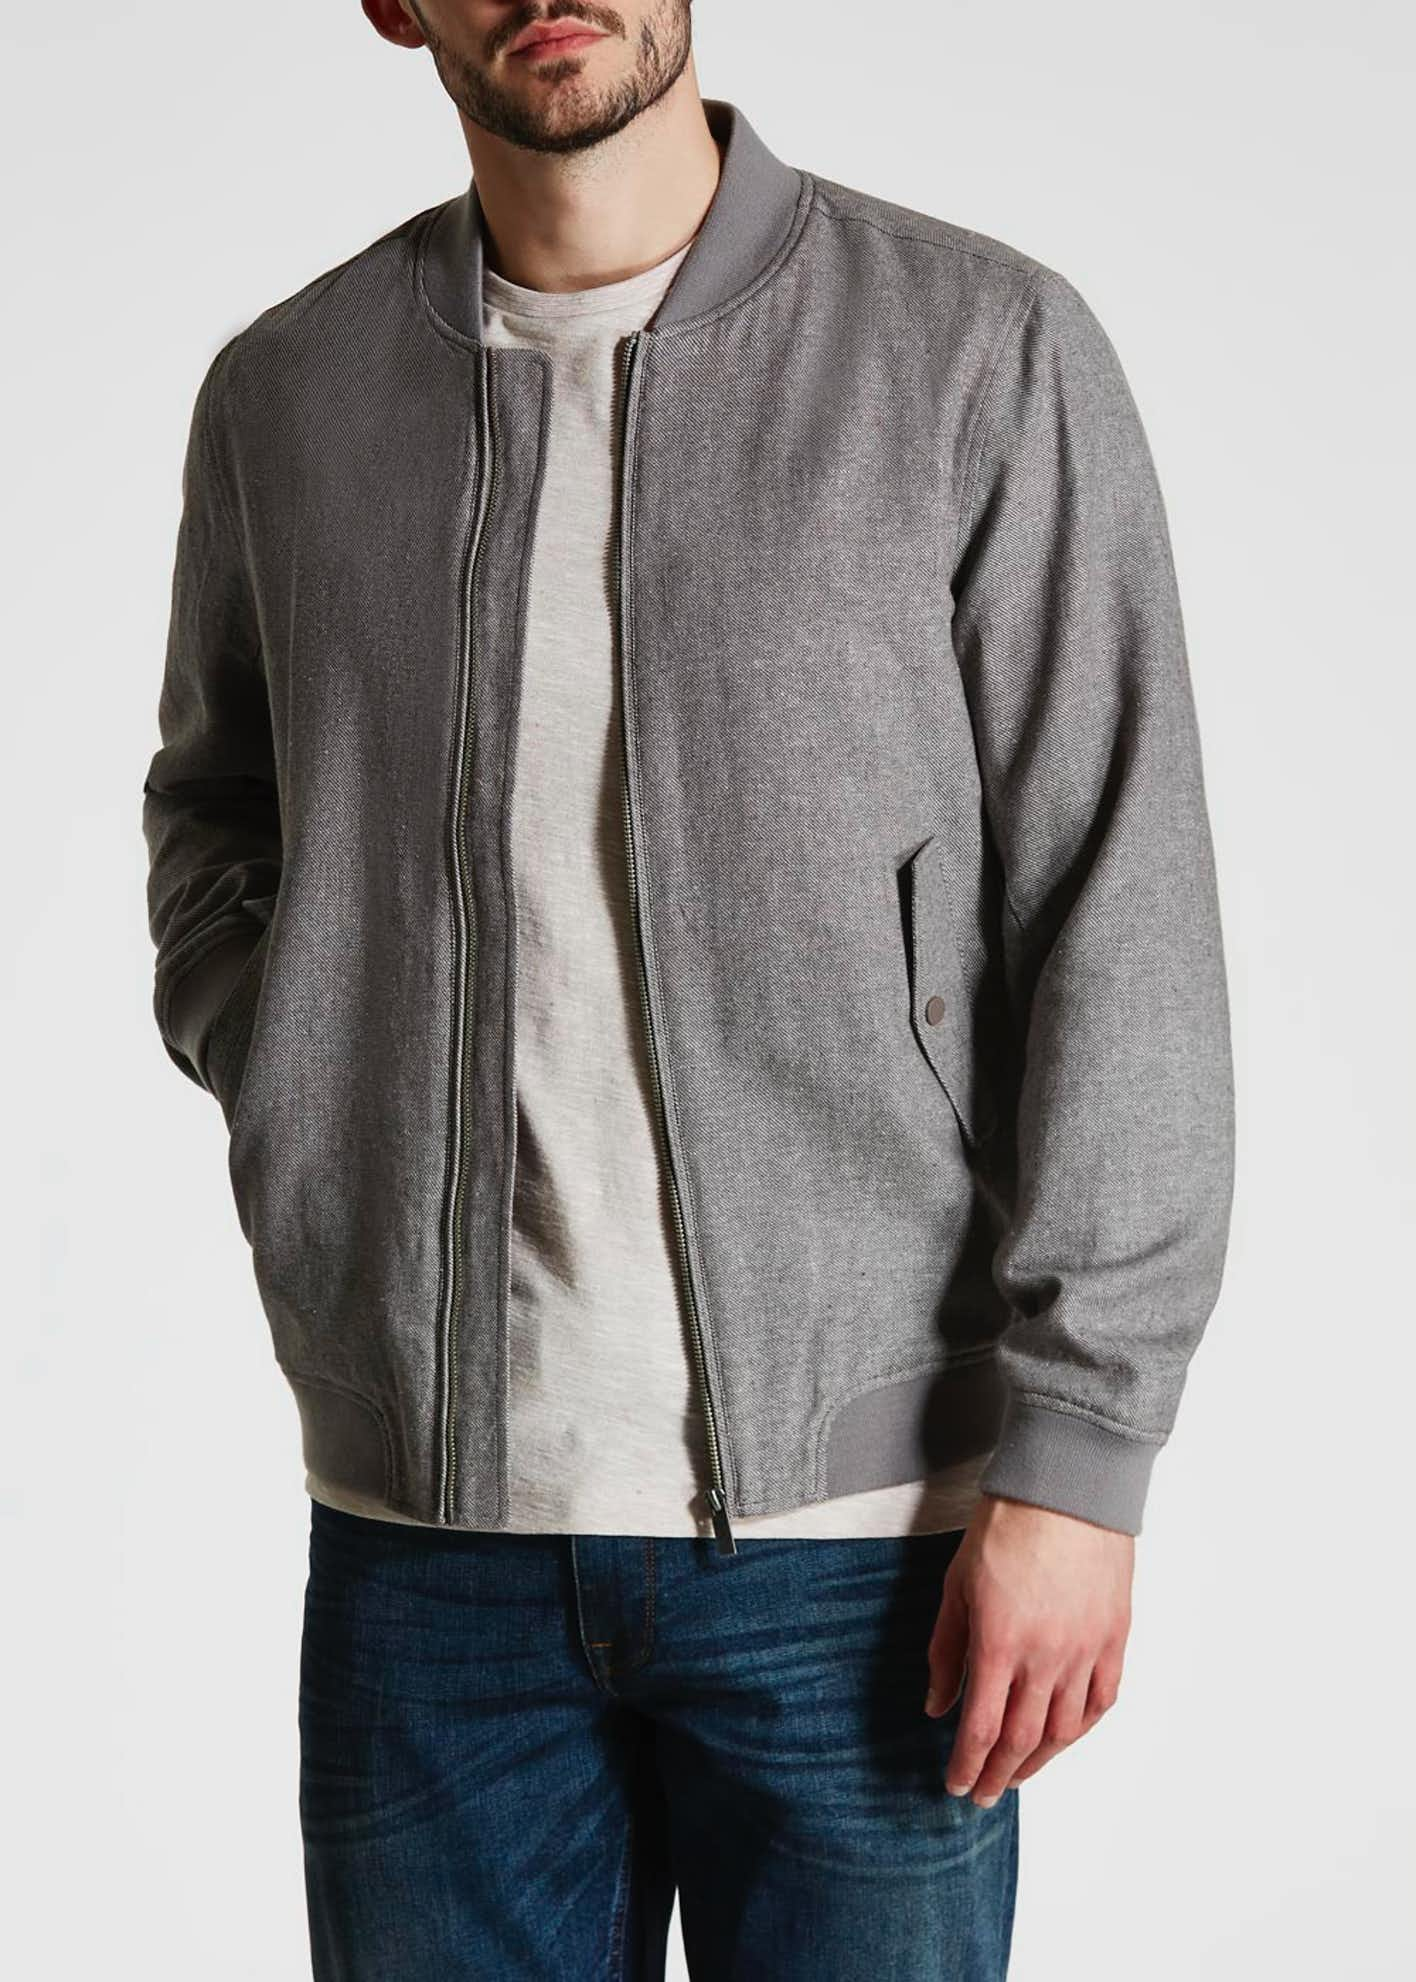 Buy used mens clothes online